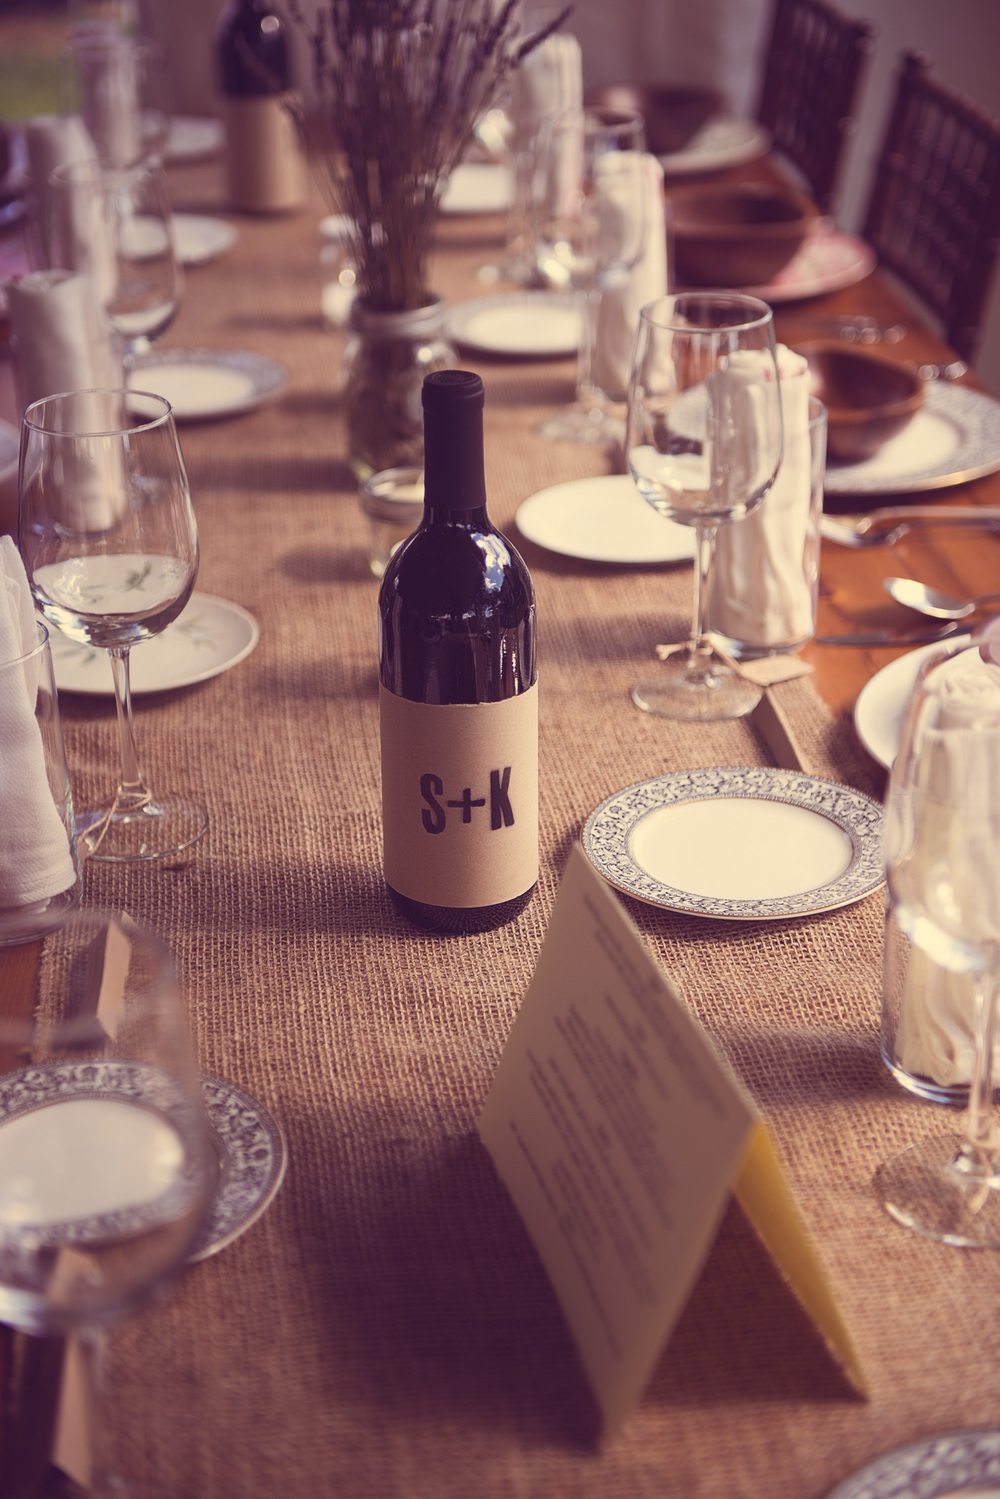 SK wine custom place setting china dishees outdoor